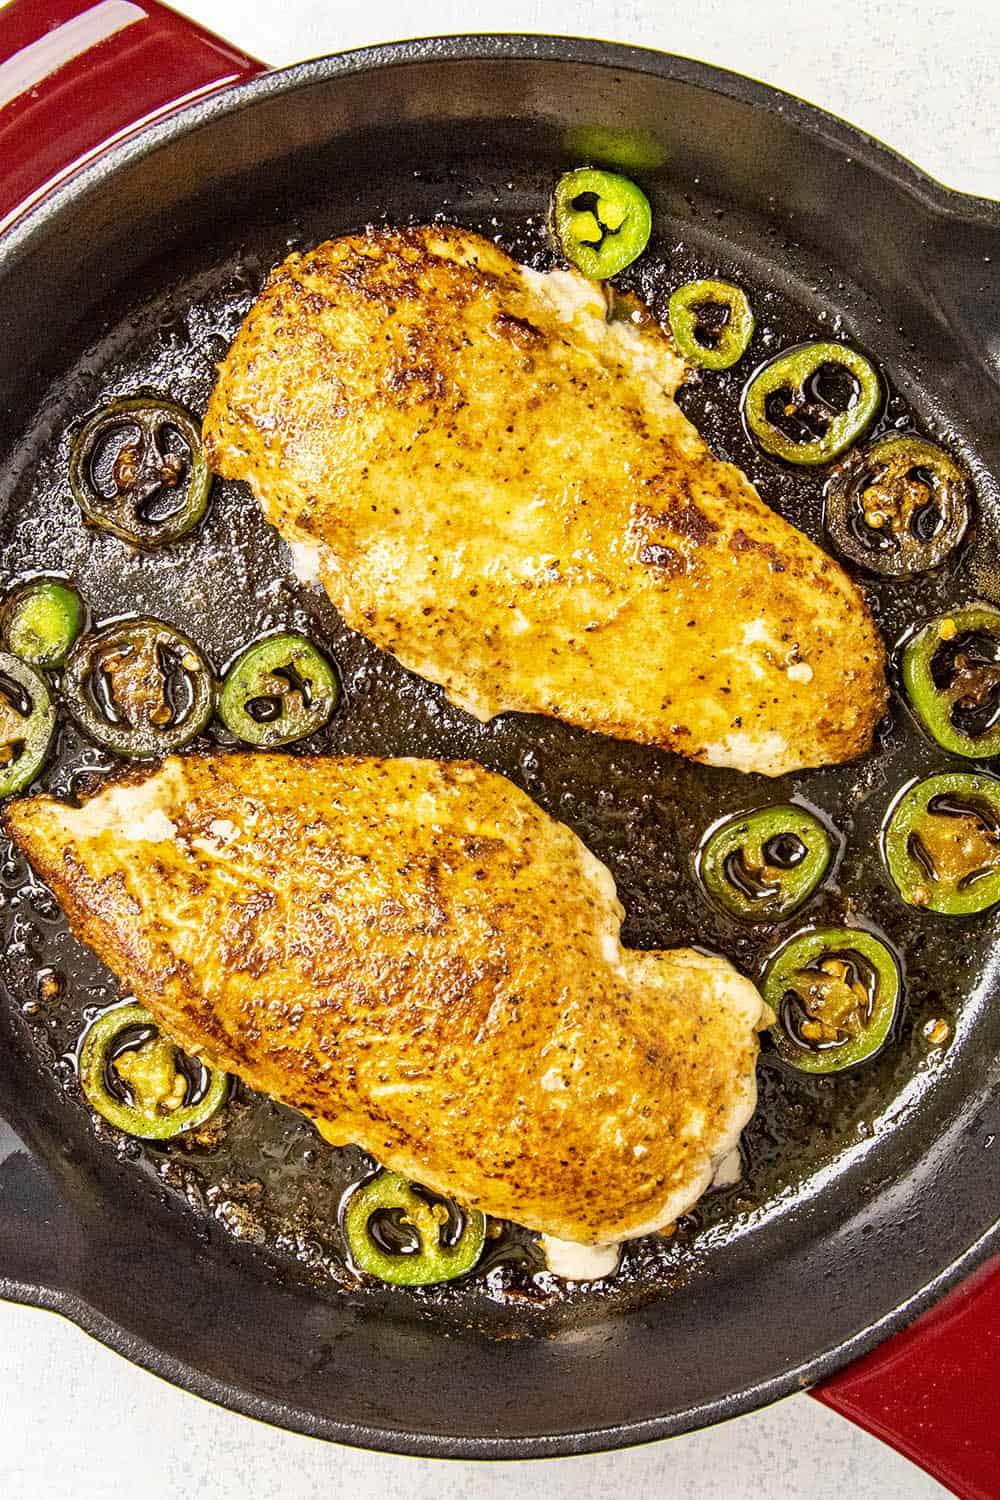 Juicy Blackened Chicken breasts, just seared